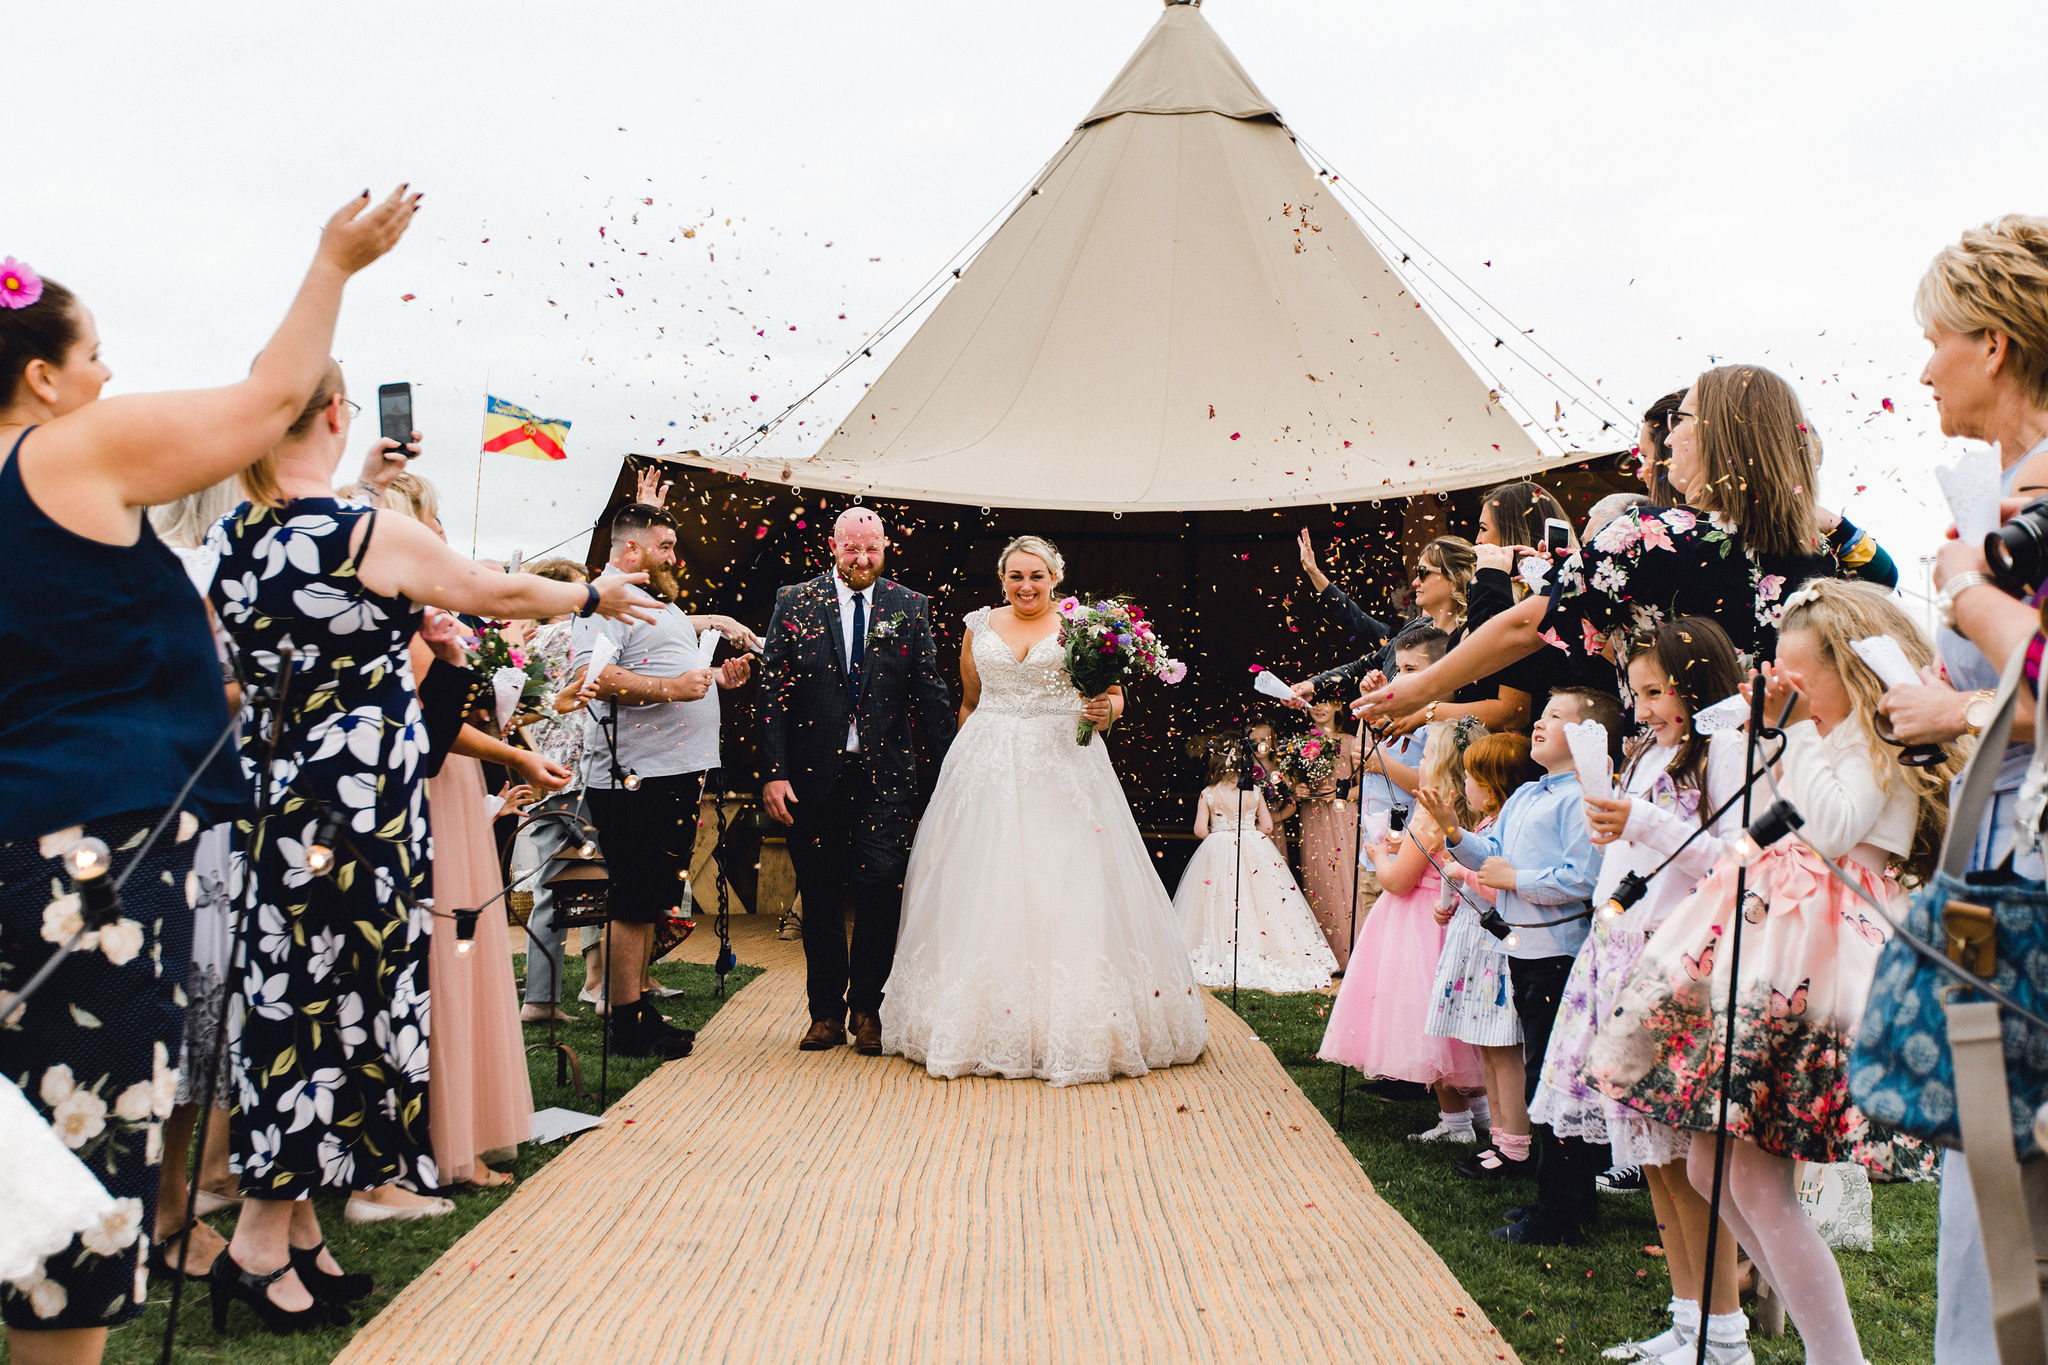 Confetti toss photo at a tipi wedding in Blackpool